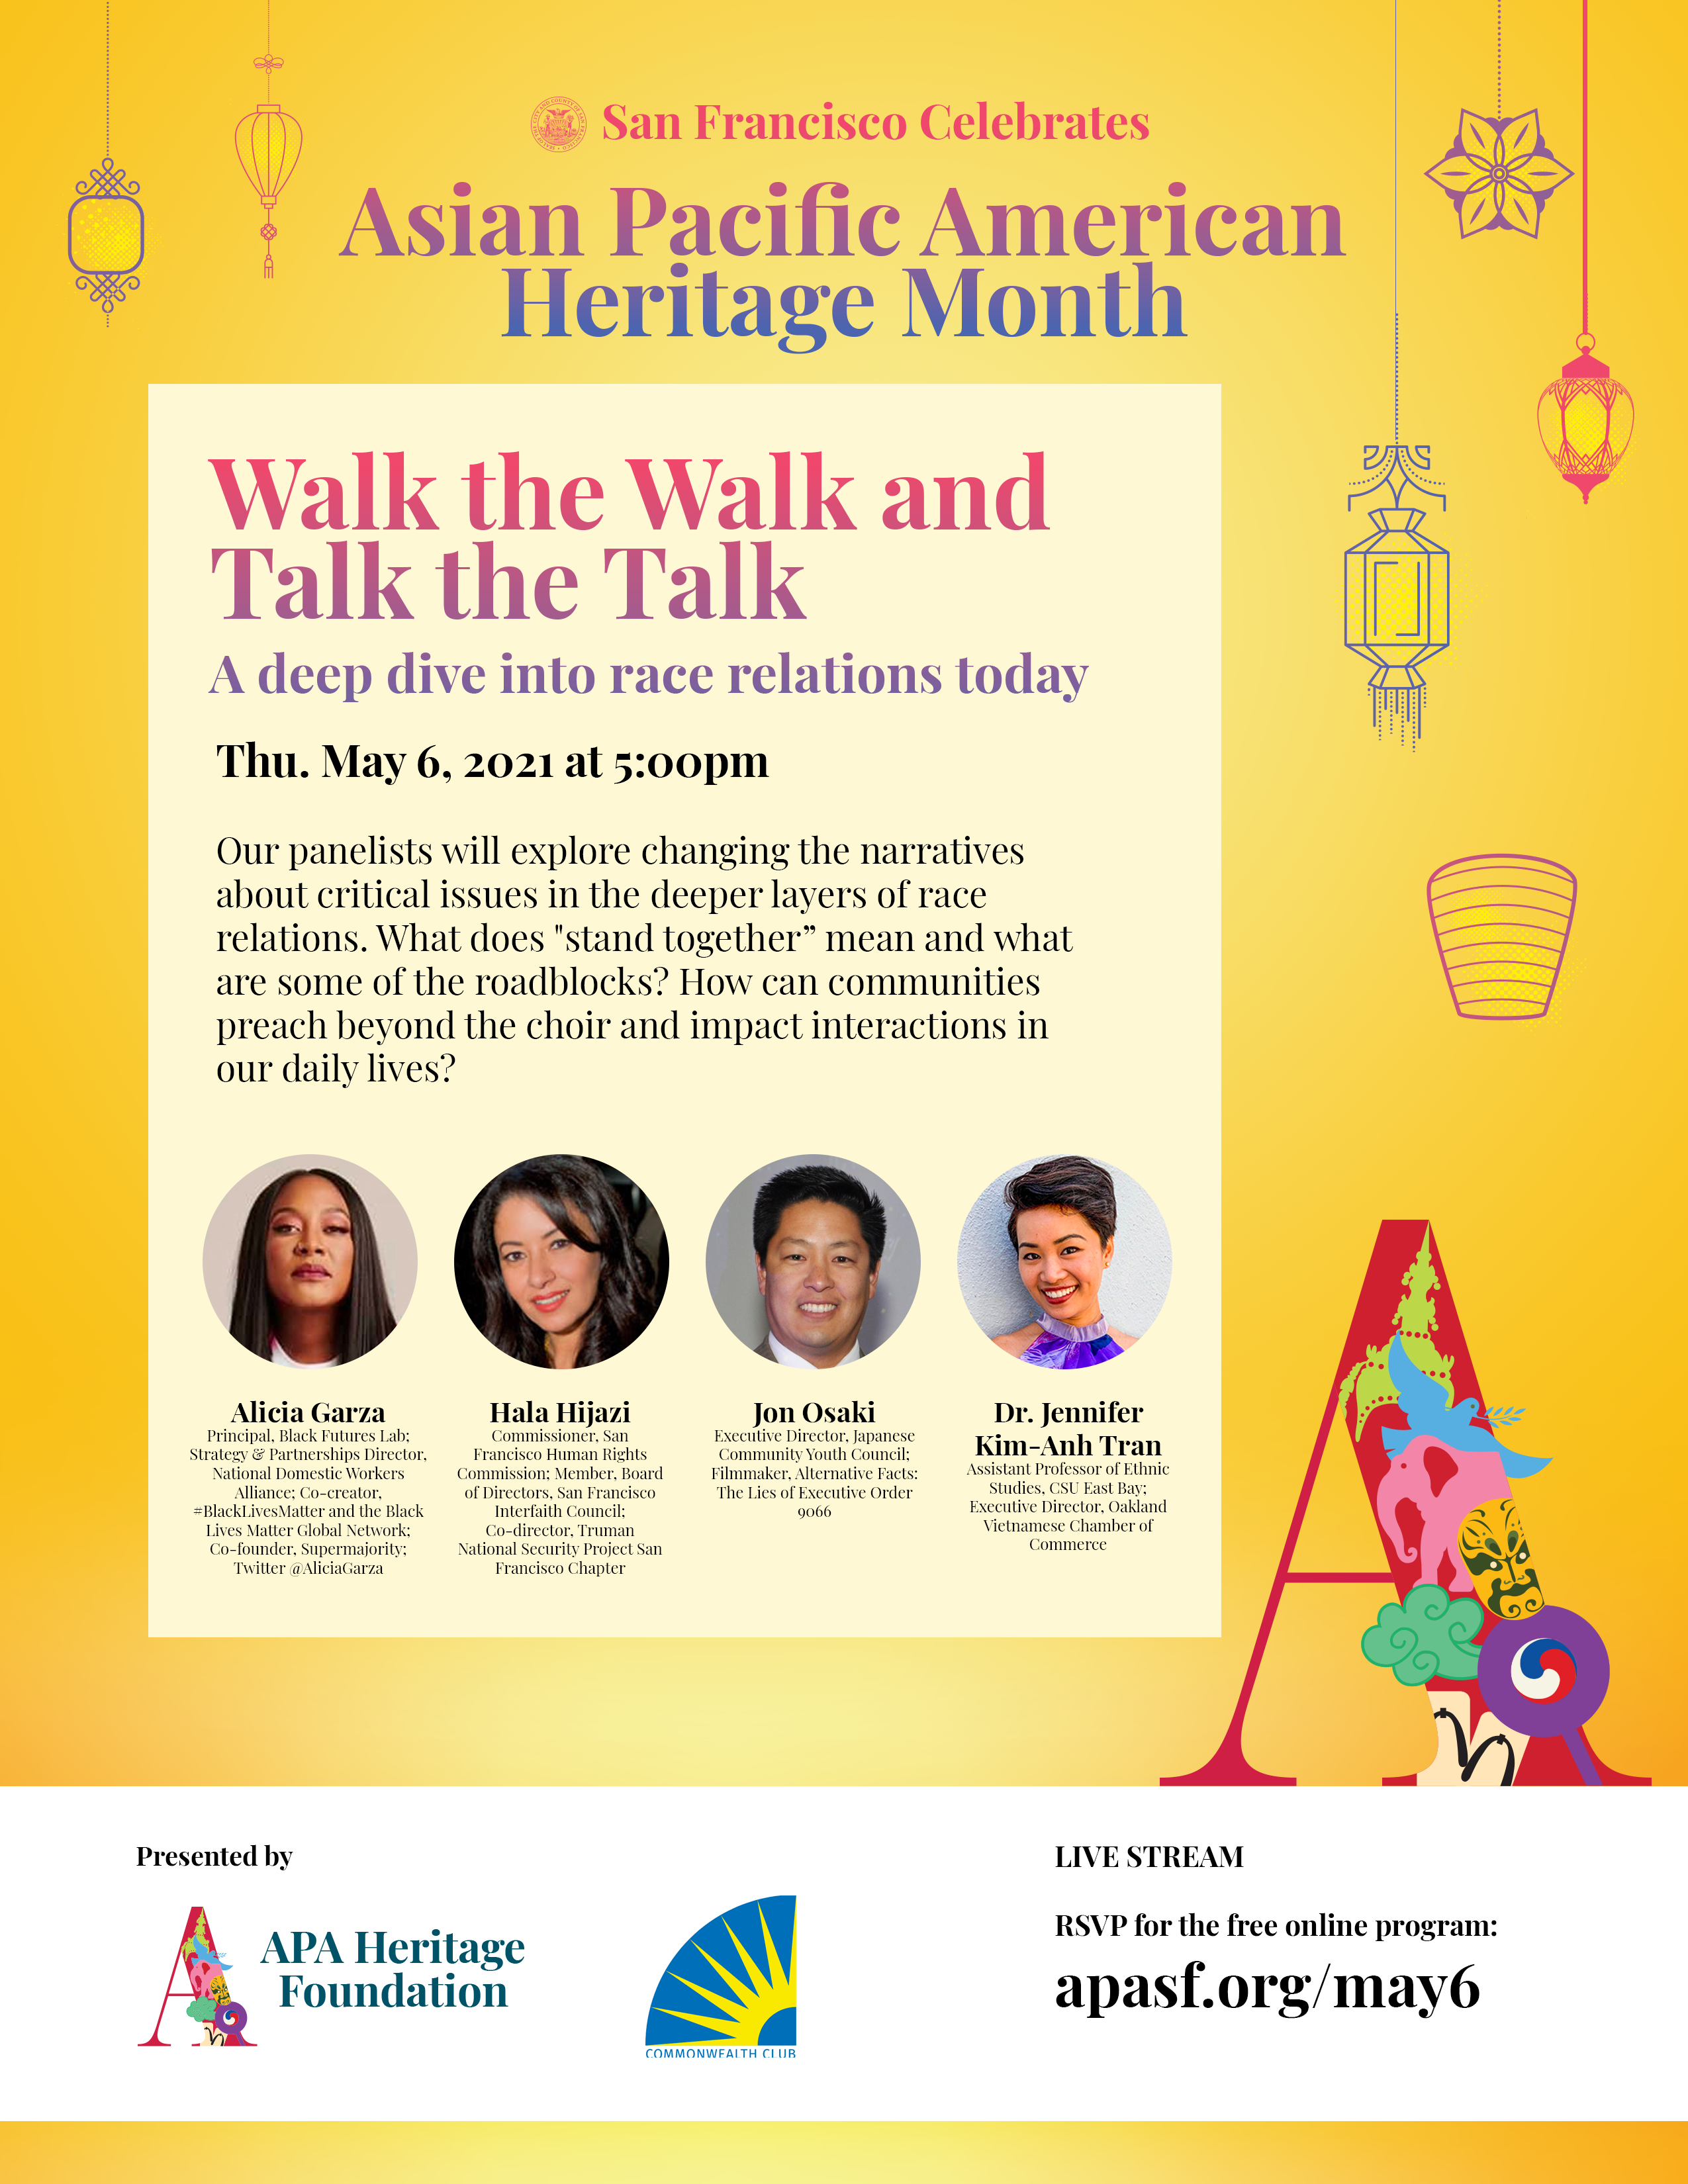 WALK THE WALK AND TALK THE TALK: A DEEP DIVE INTO RACE RELATIONS